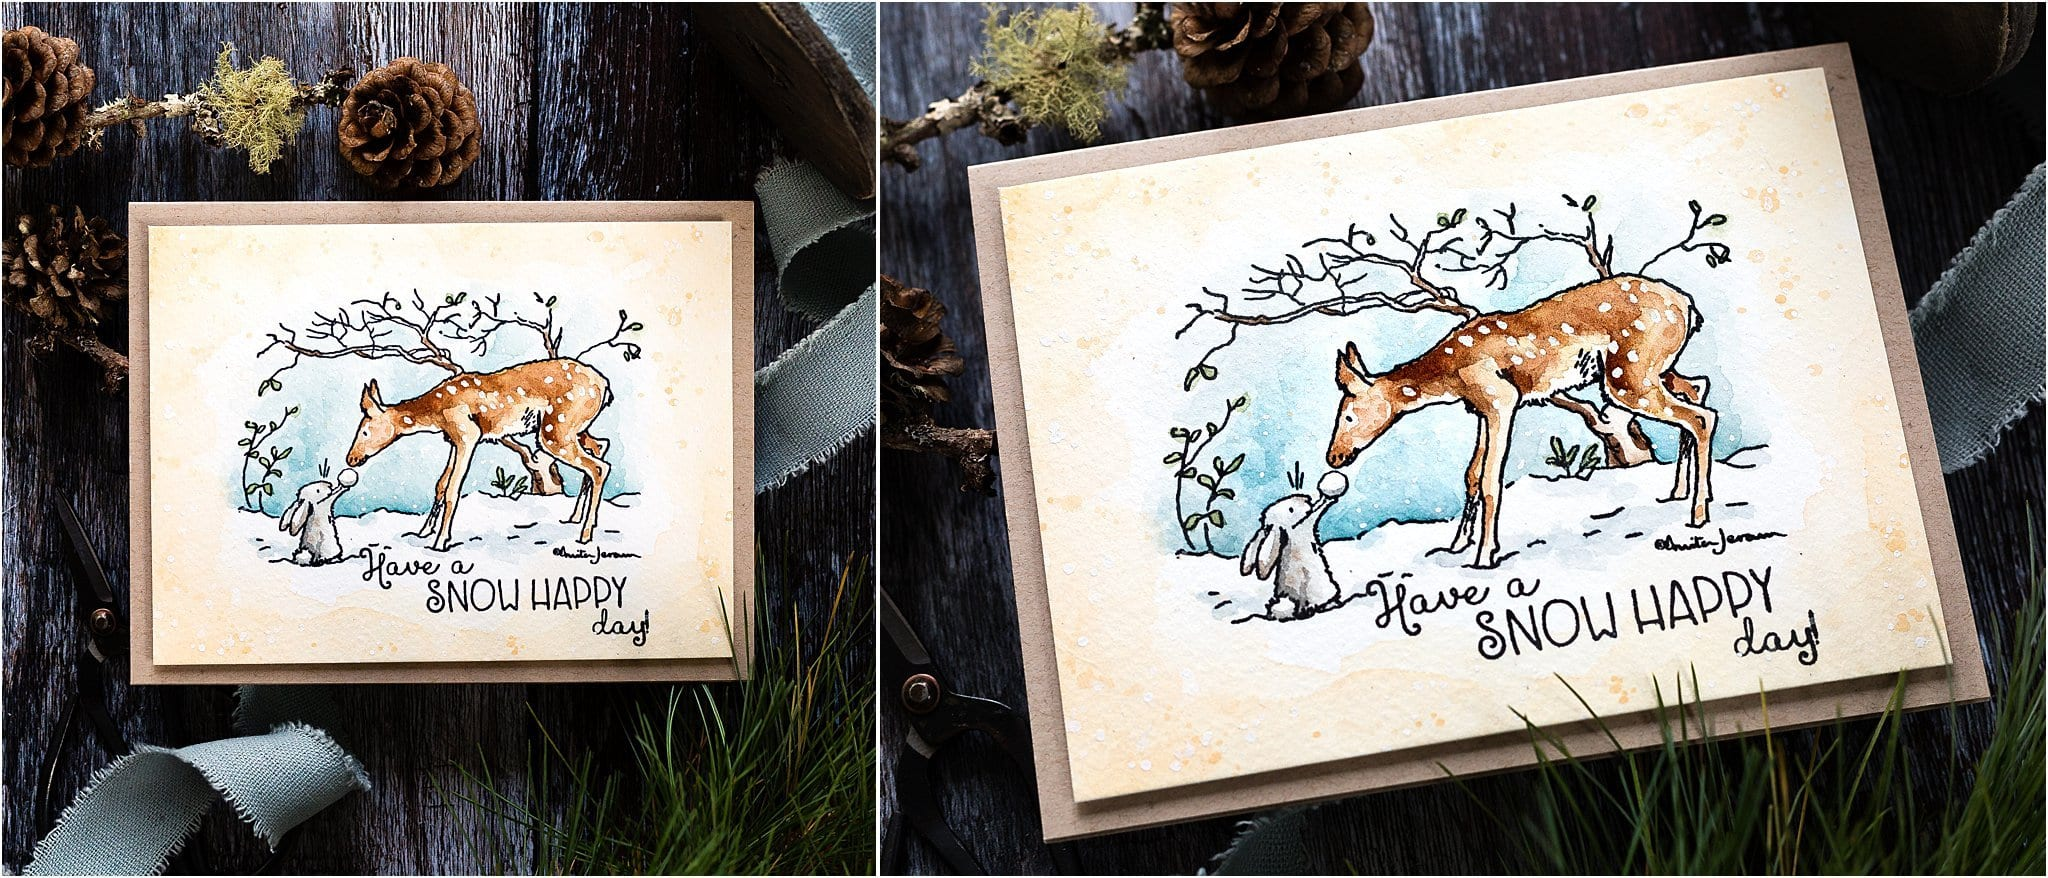 Watercoloured Guess How Much I Love You handmade cards by Debby Hughes using Anita Jeram's illustrations by Colorado Crafts #watercolor #homemade